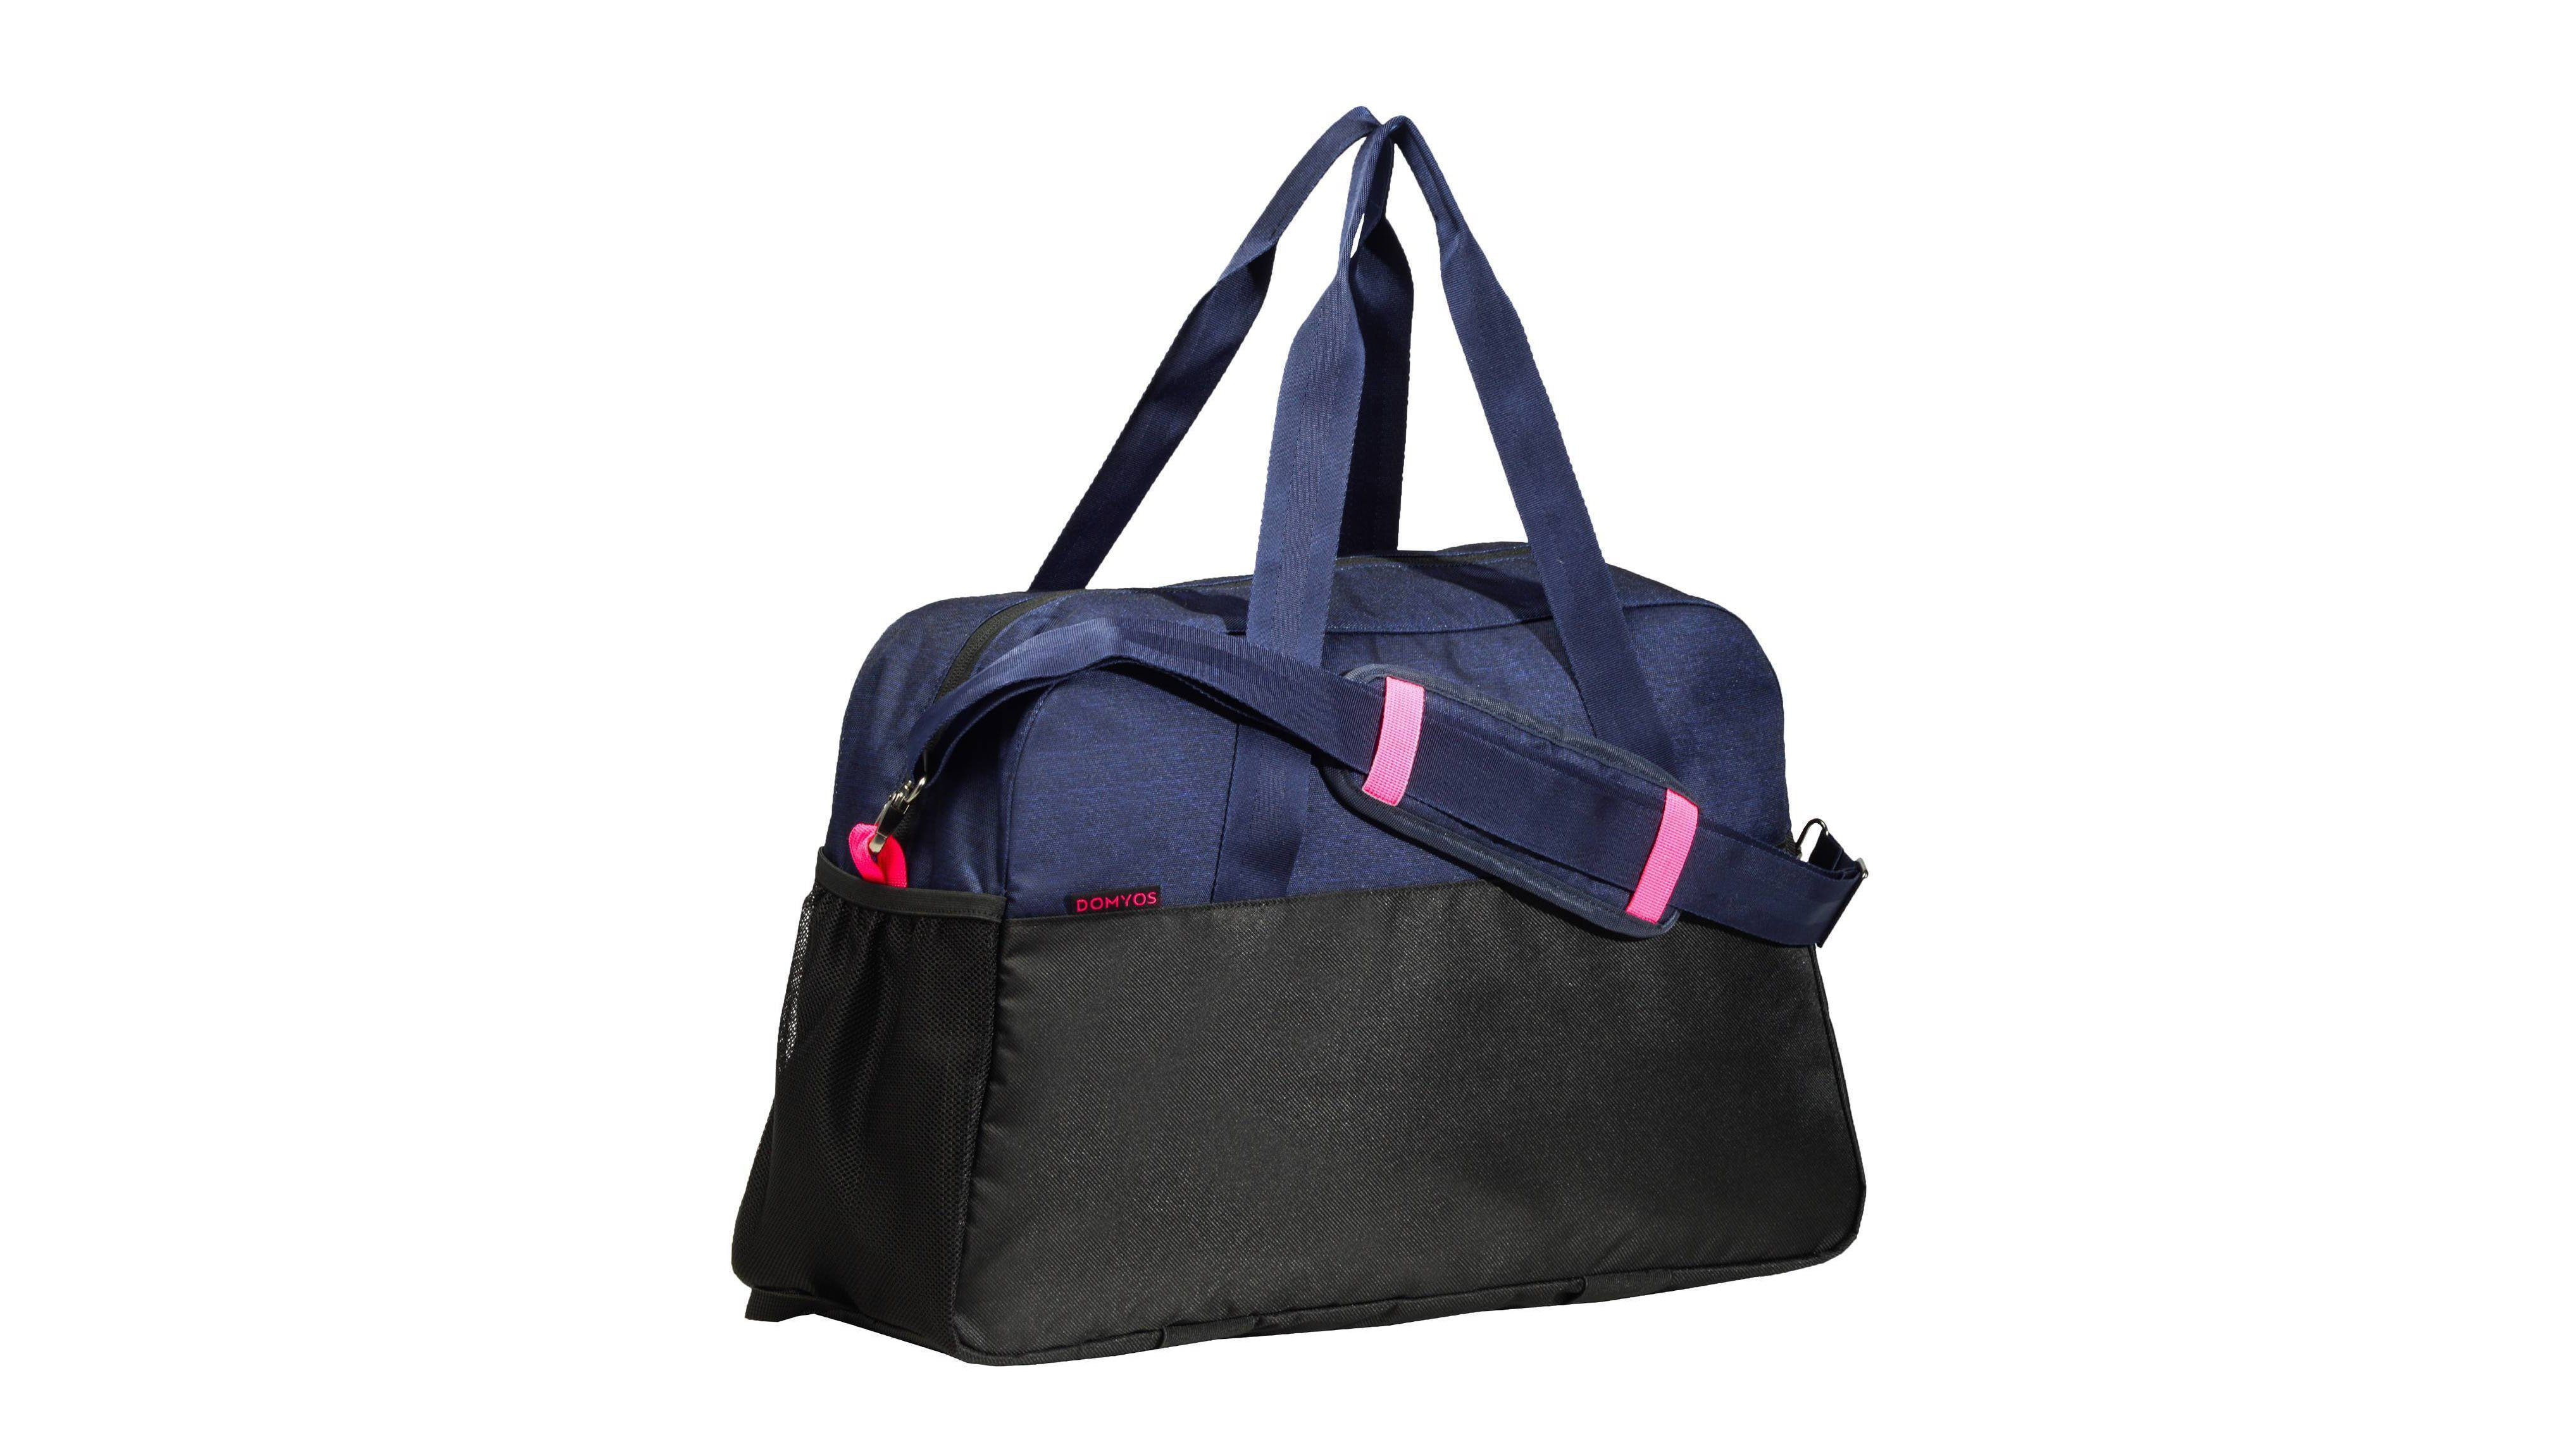 This bargain bag has all sorts of clever features such as elasticated  straps on the bottom to carry a yoga mat b87378a423862